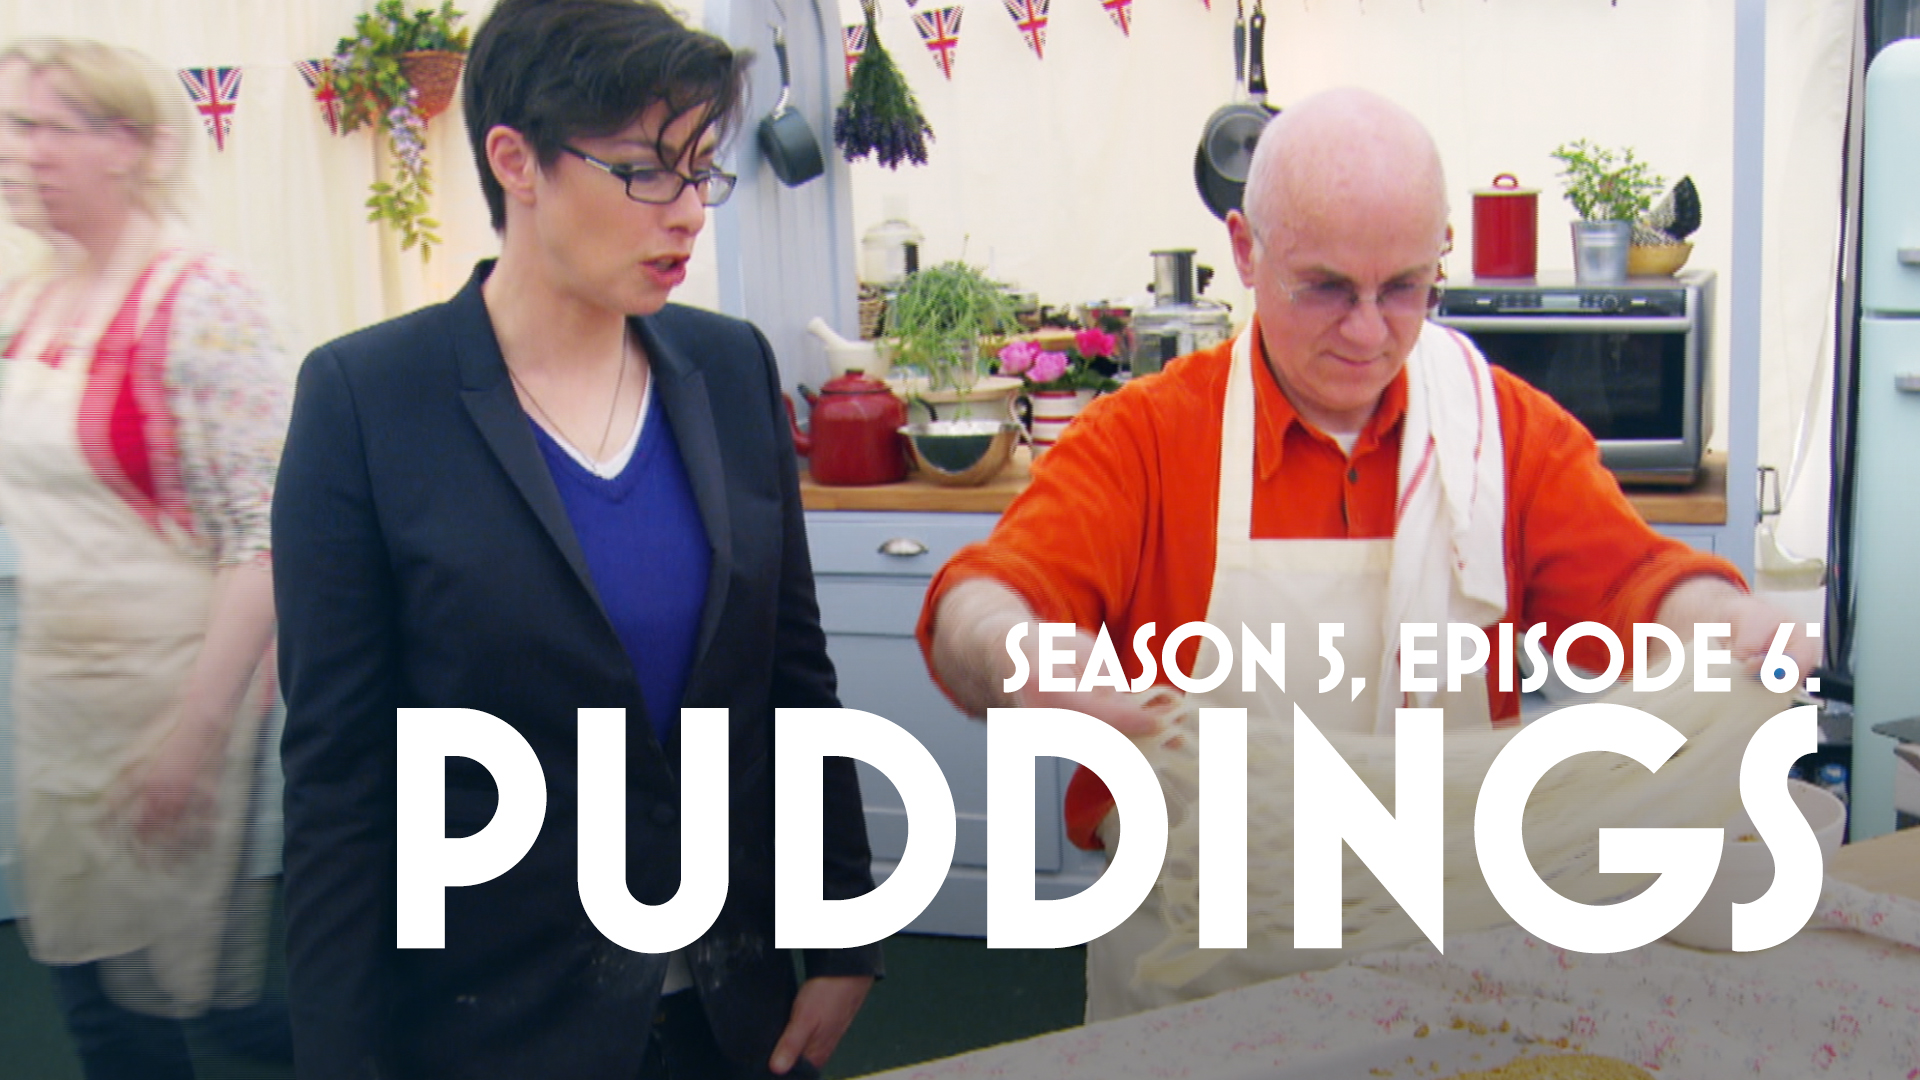 Episode 6: Puddings